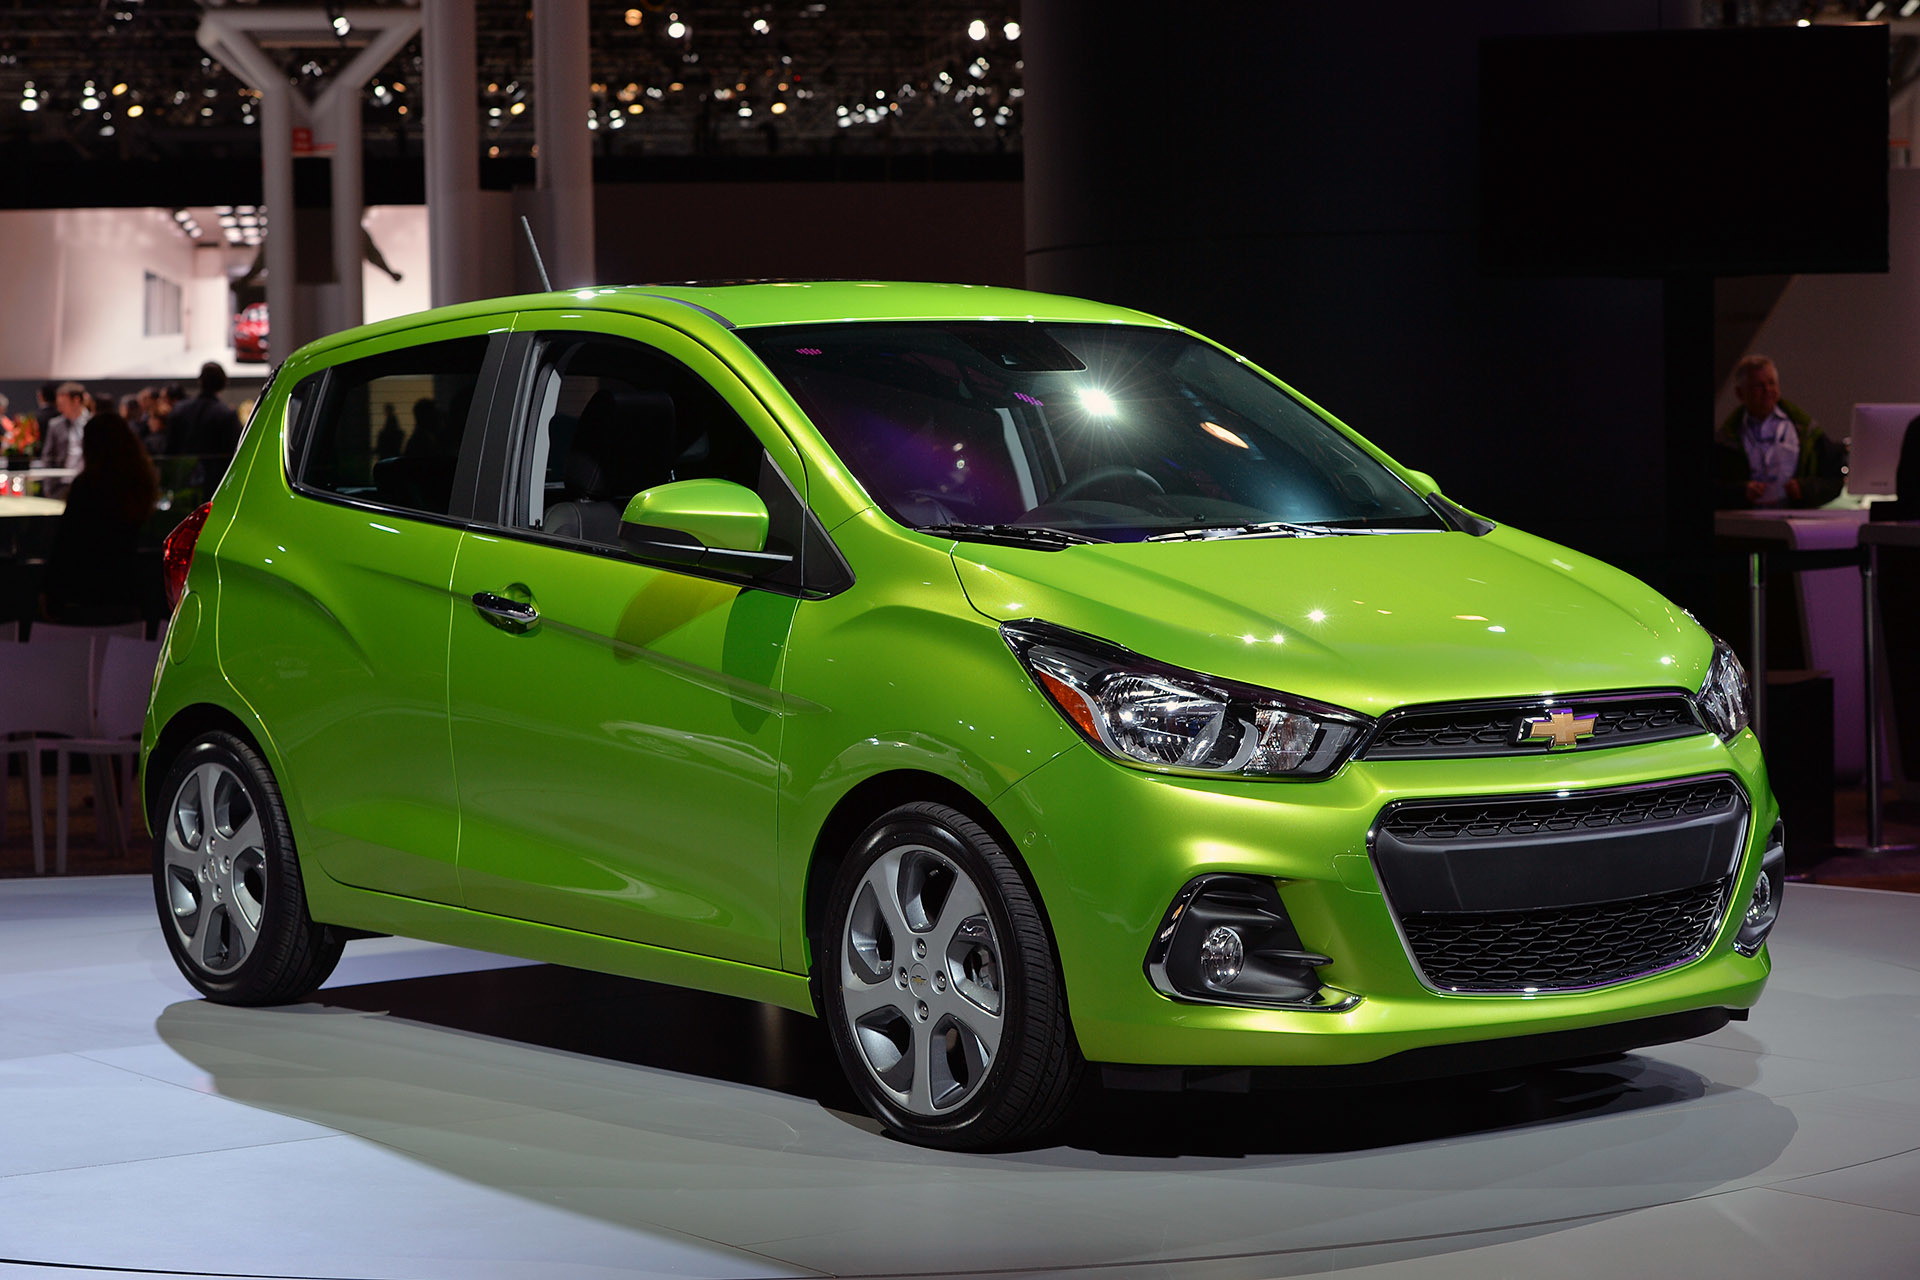 2016 chevrolet spark at the new york auto show 2017 2018 best cars 2017 2018 best cars reviews